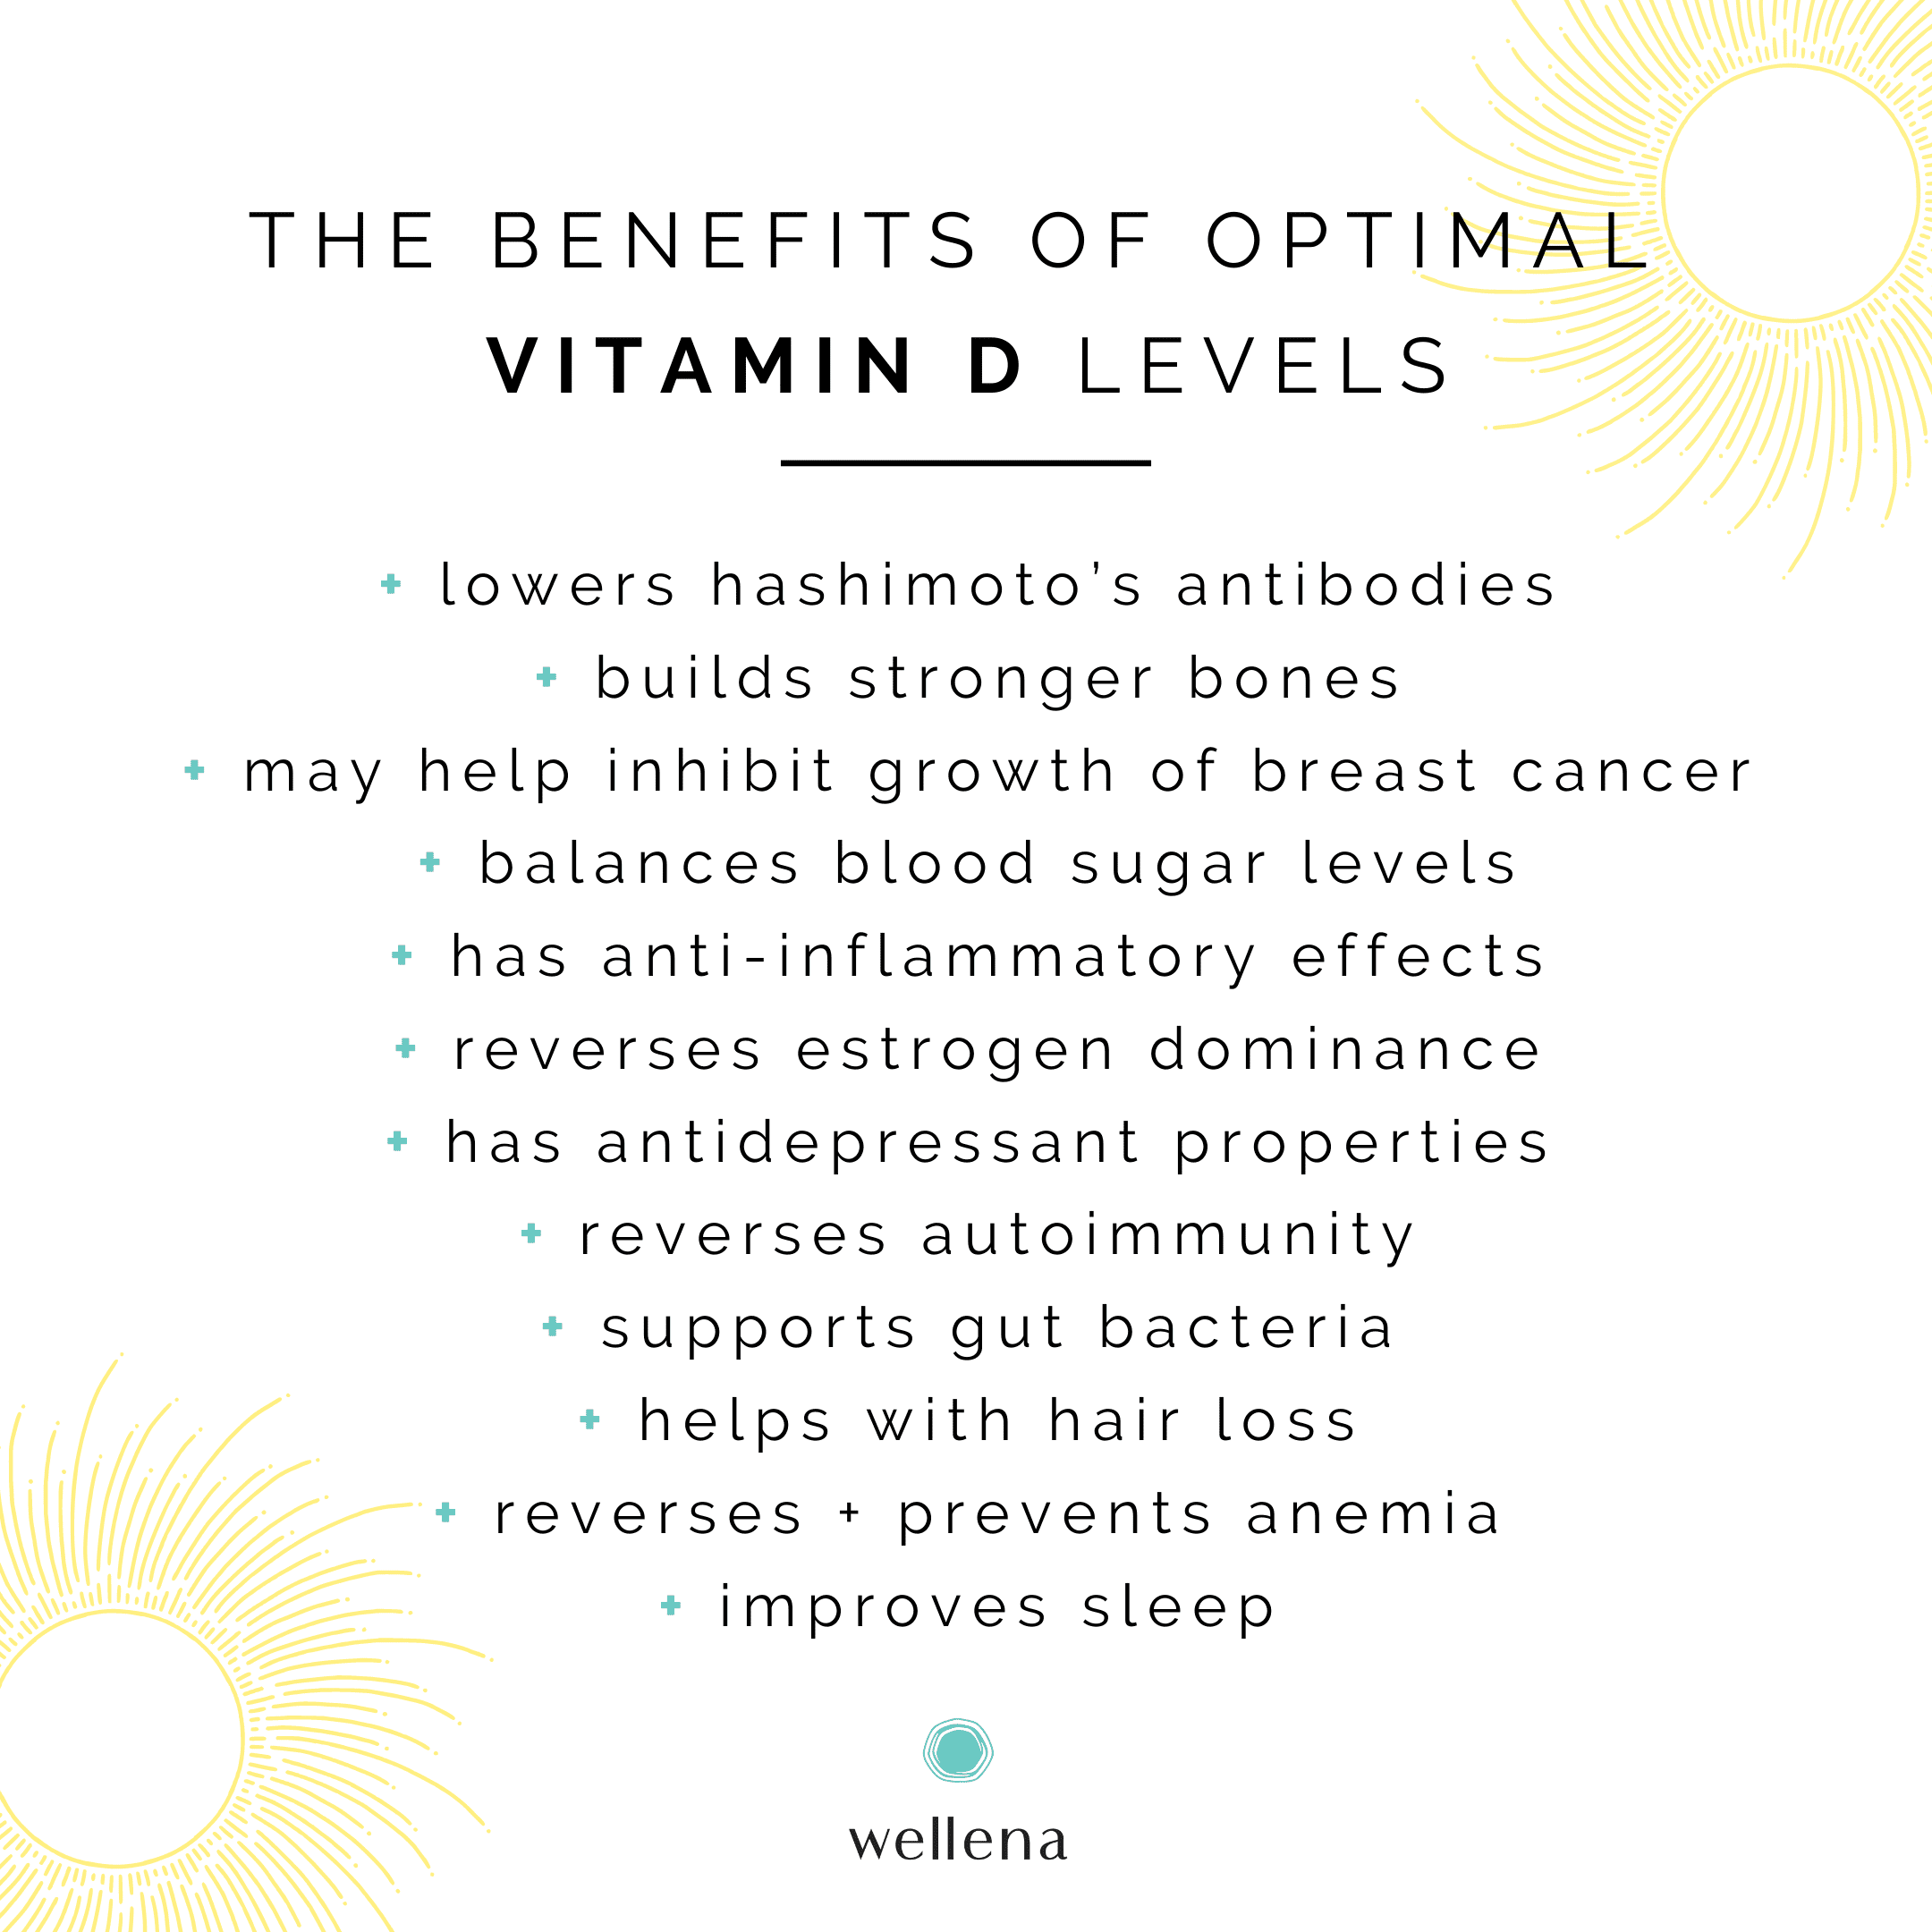 Vitamin D has so many health benefits, protecting against or improving symptoms in such a wide range of health conditions, a book could be written about it. However, here are just a few benefits of vitamin D that are especially relevant to women's health, hormone balance and general optimal health.